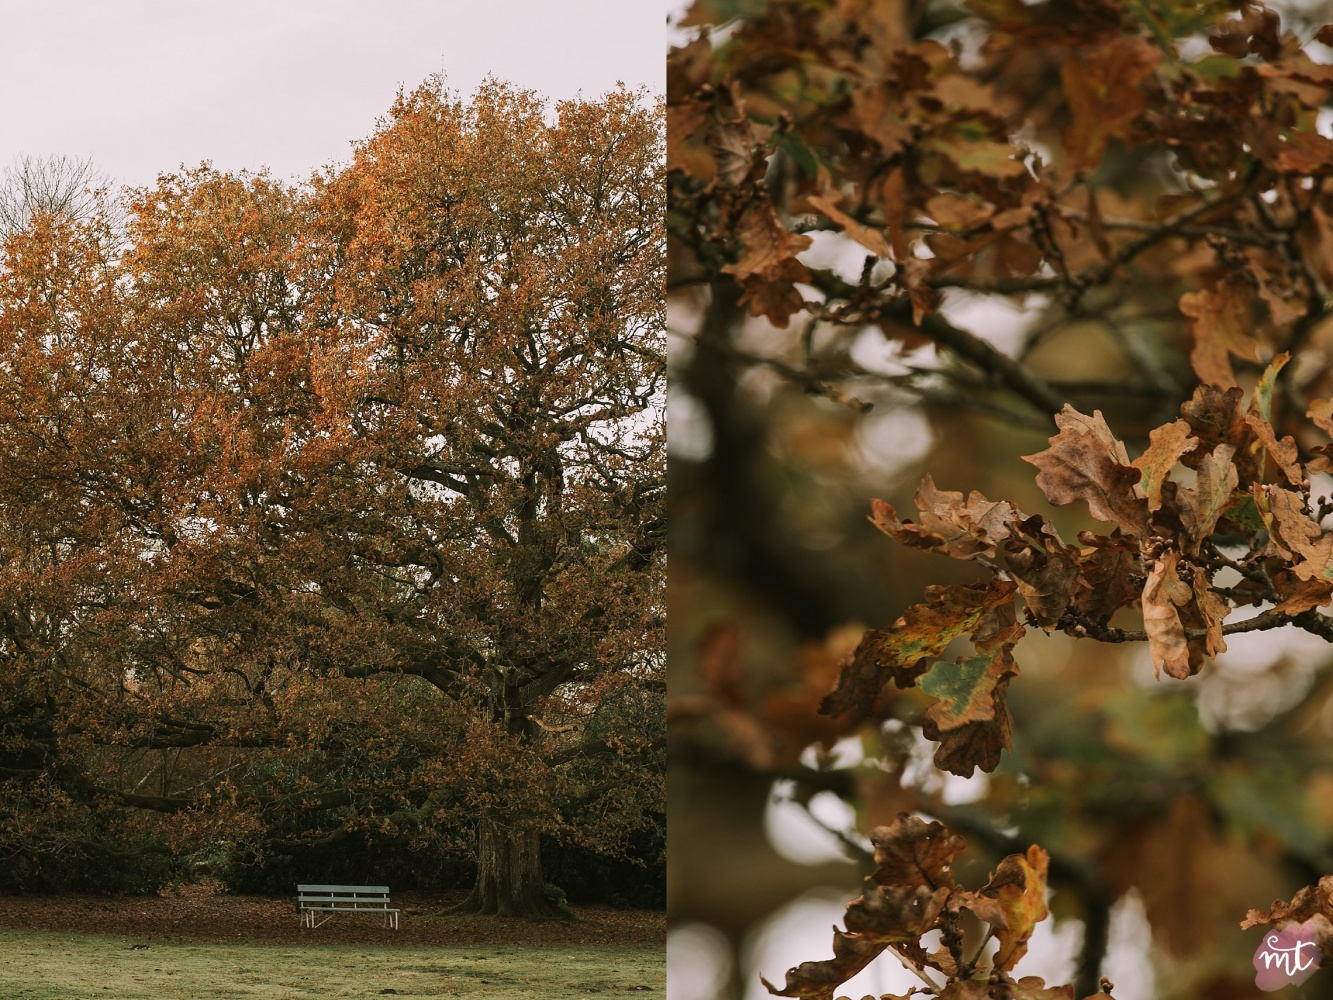 Seasons, Autumn, Natural Light, UK Photographer, Real Life, Mother Nature, Seasons: Spring, Summer, Autumn Winter English countryside